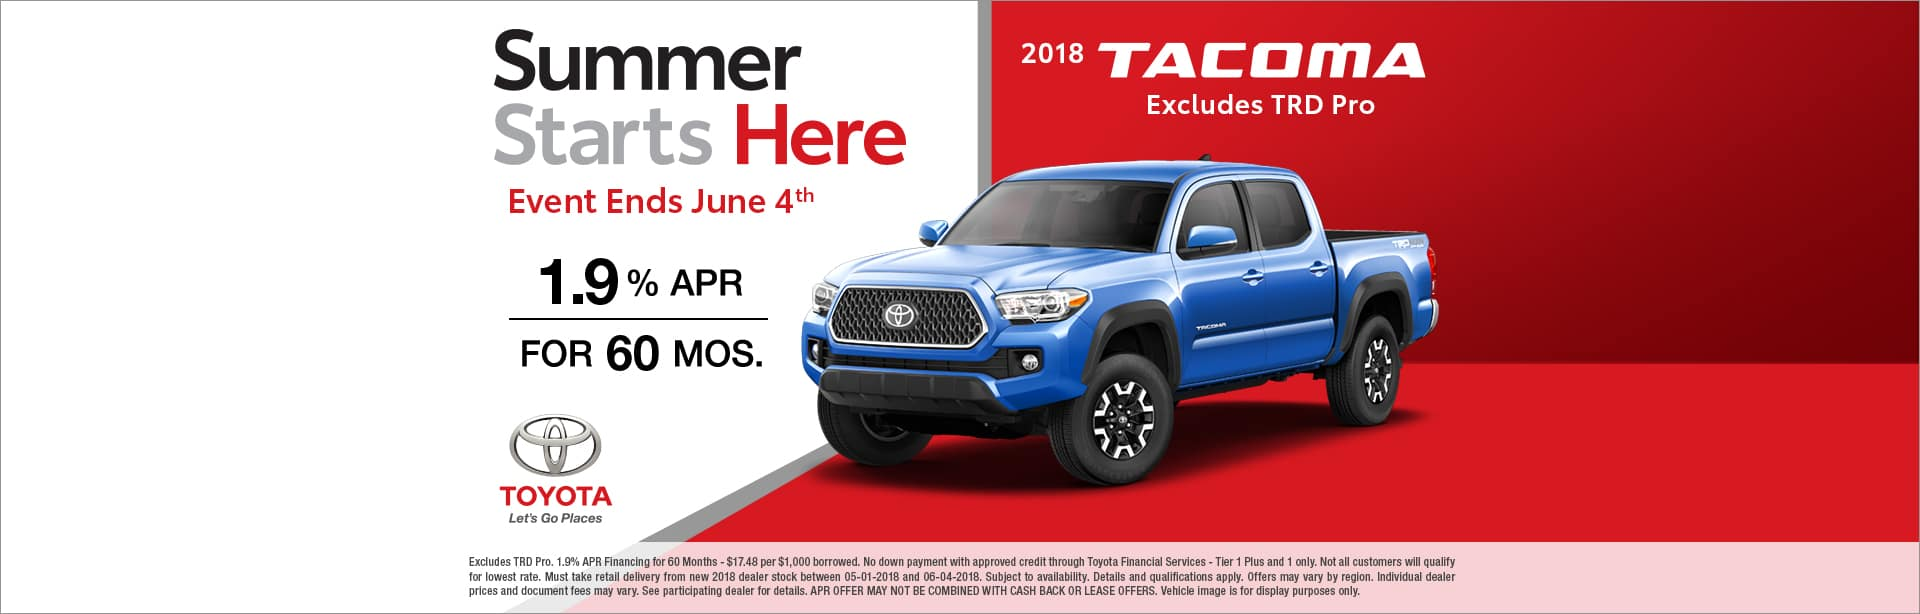 2018 Toyota Tacoma APR Offer